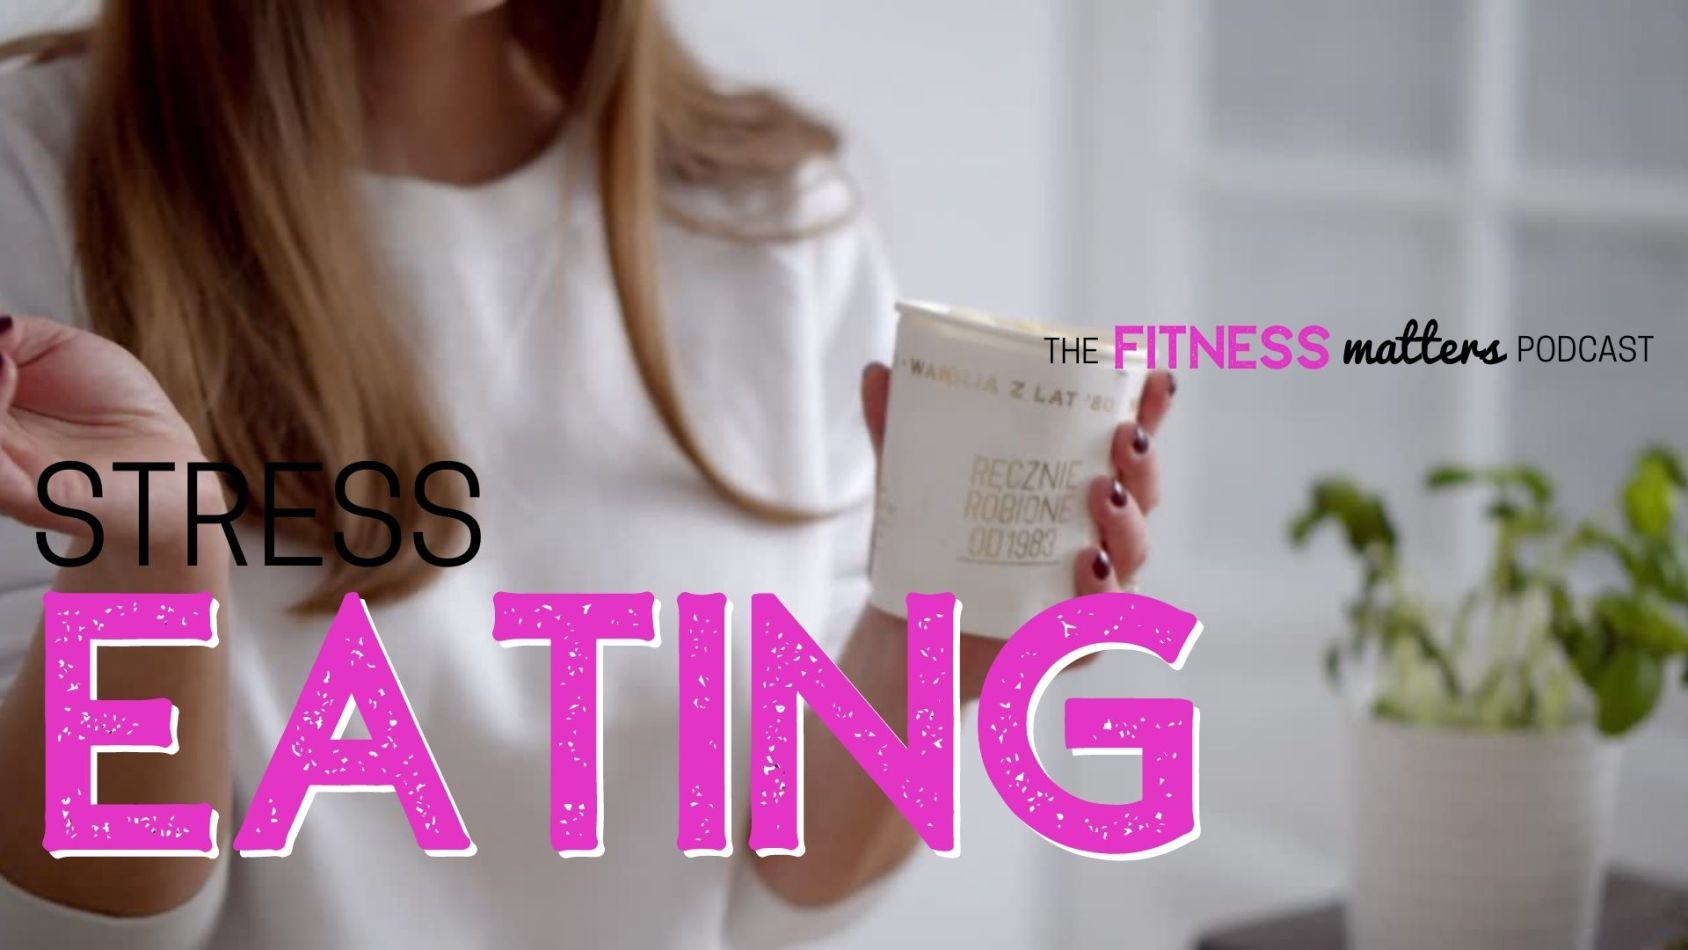 Ep. 087: Stress EATING ???? The Fitness Matters Podcast with Pahla B